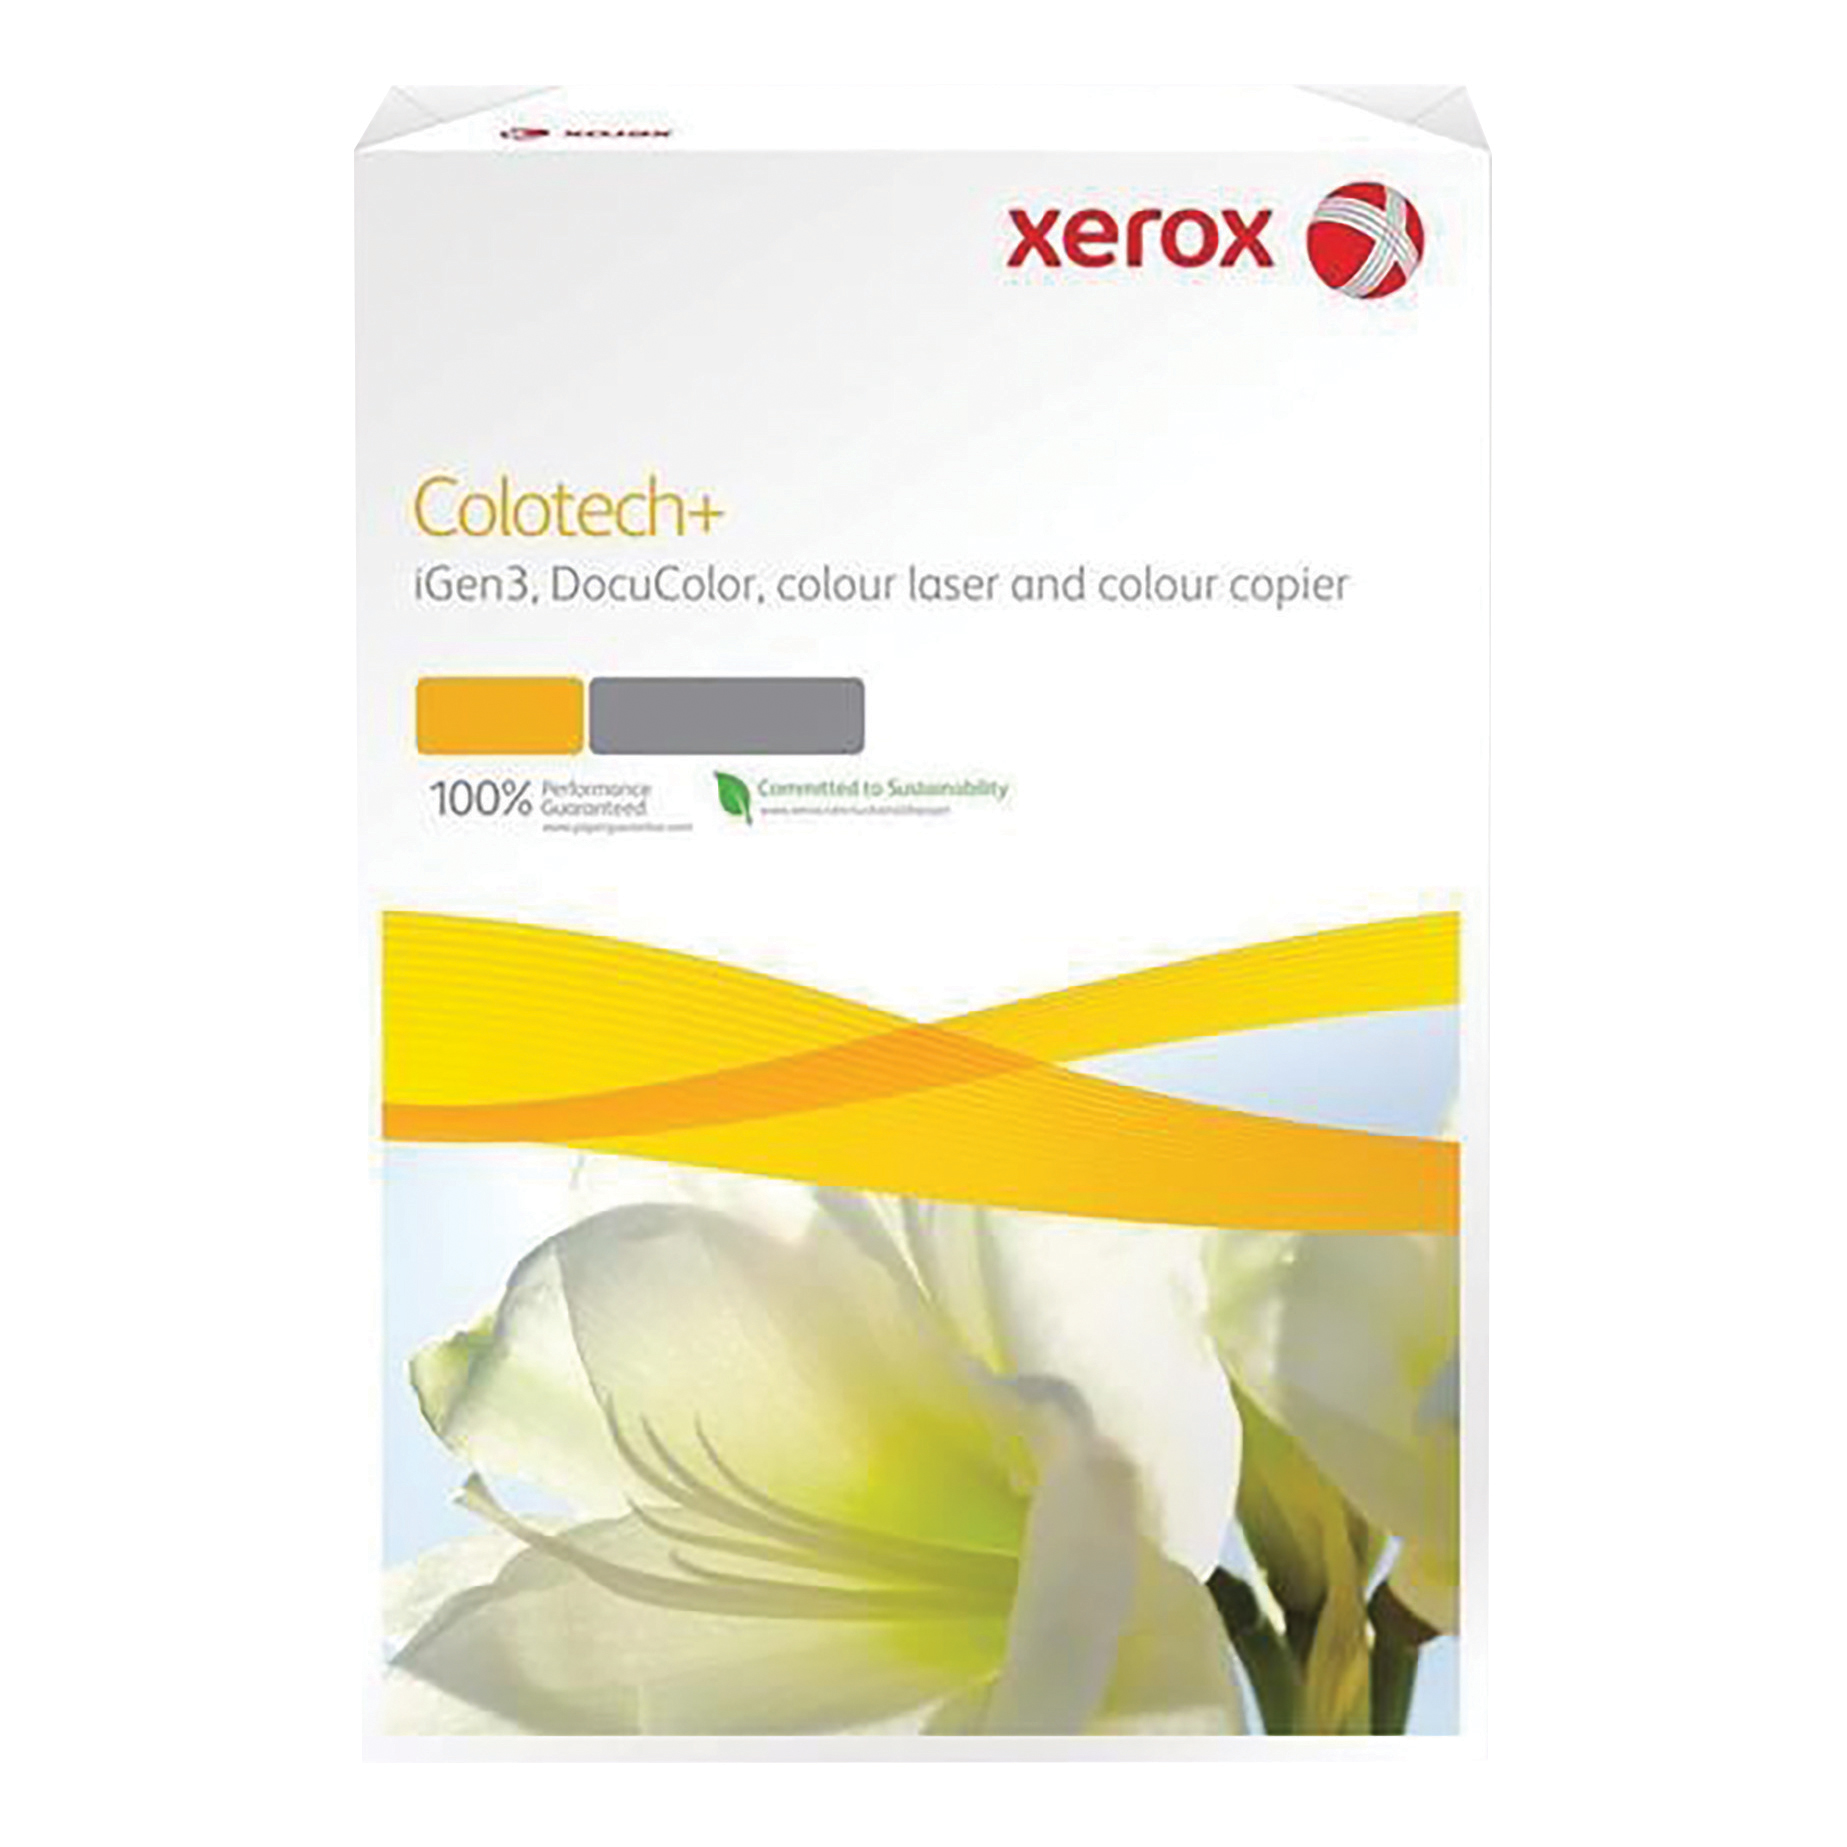 Xerox FSC Colotech+ Digital Colour Paper Prem Ream-Wrapped ColorLok 120gsm A4 White Ref 64463[500 Sheets]